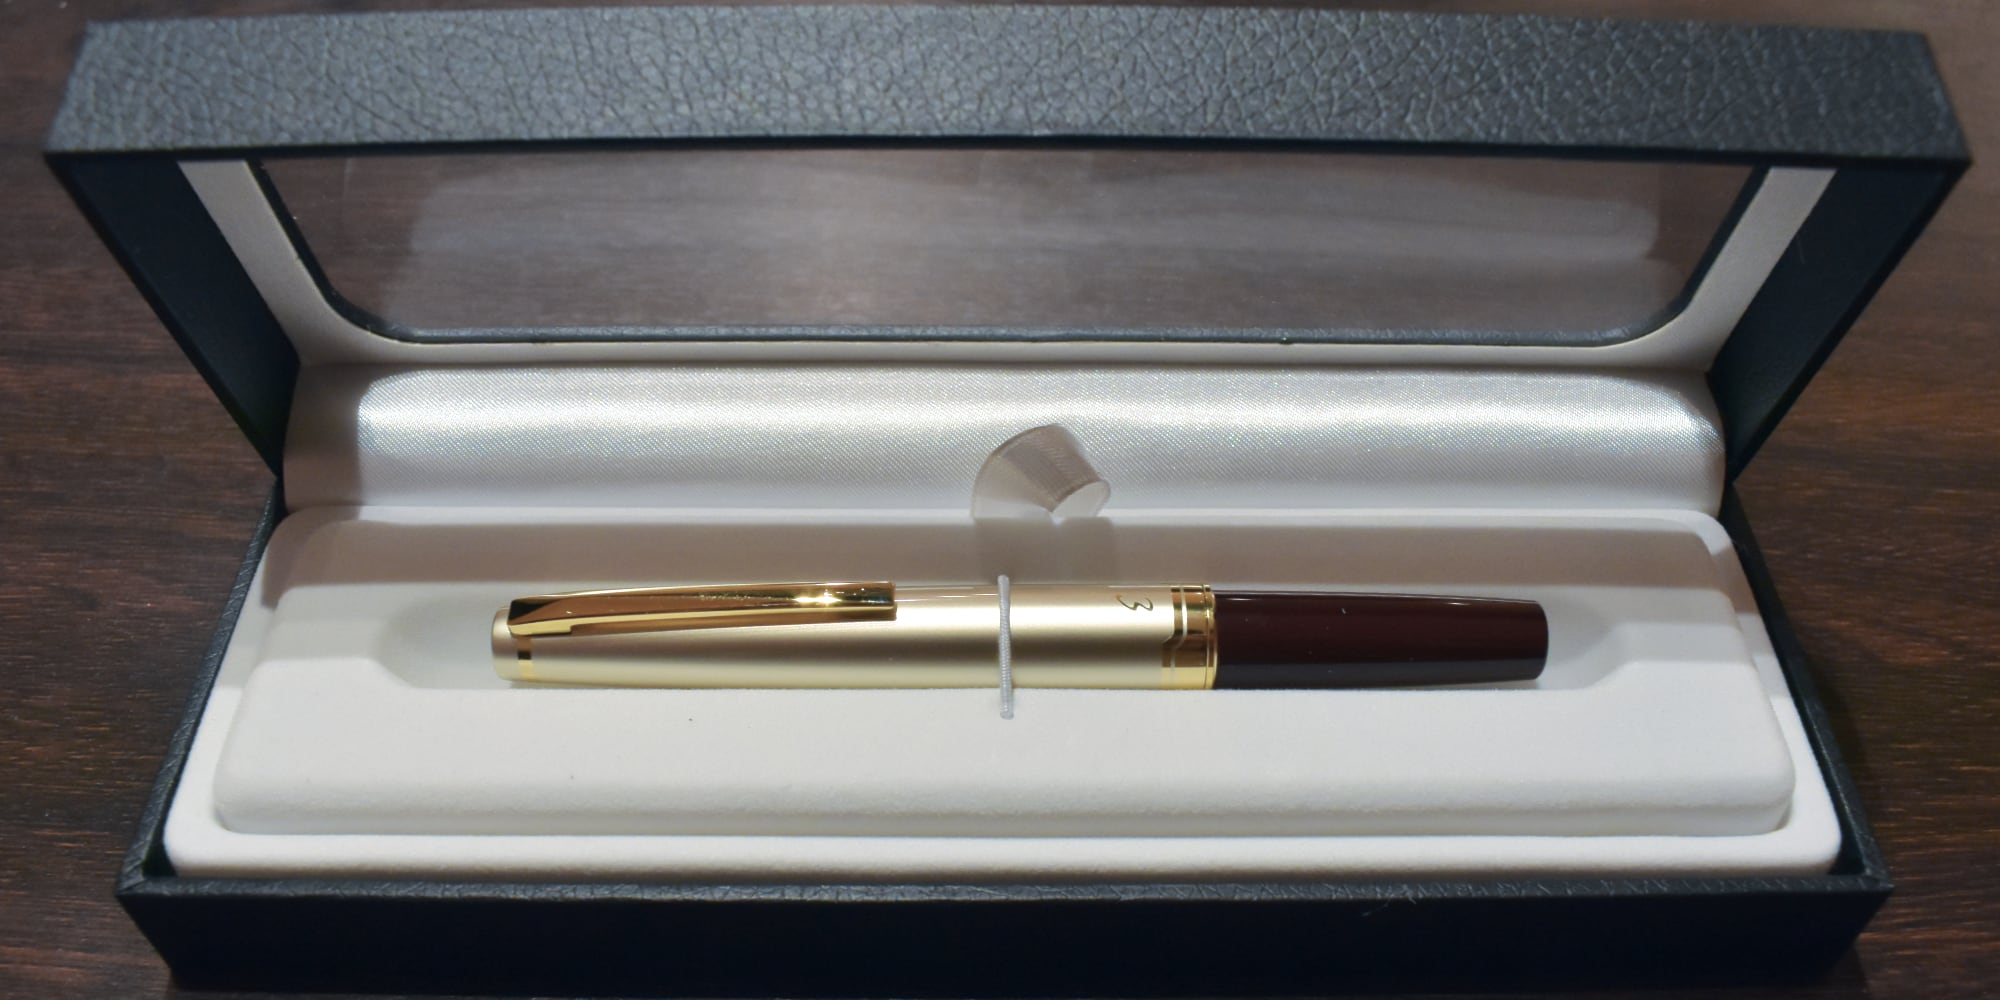 Pilot E95s boxed; the Vanishing Point comes in the same box